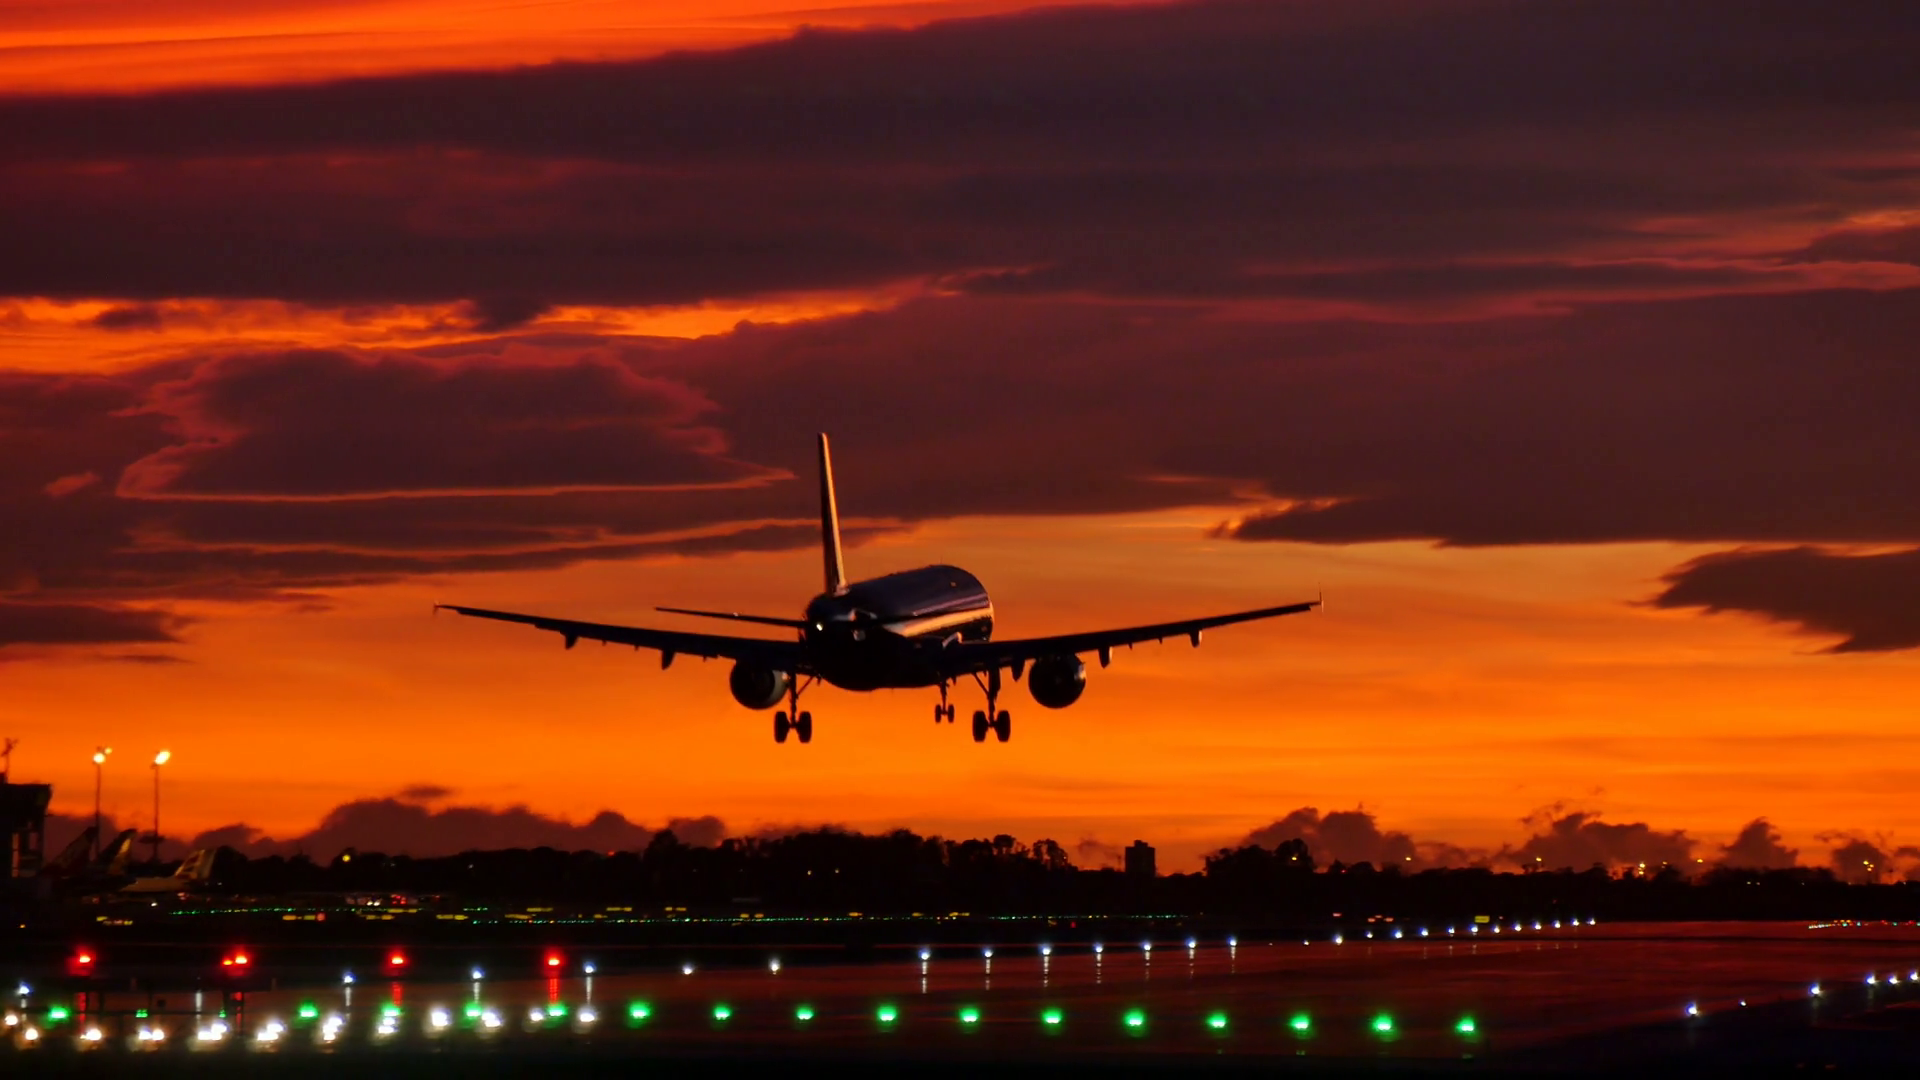 At 138.9 million, number of domestic flyers grows 18.6% in 2018: DGCA